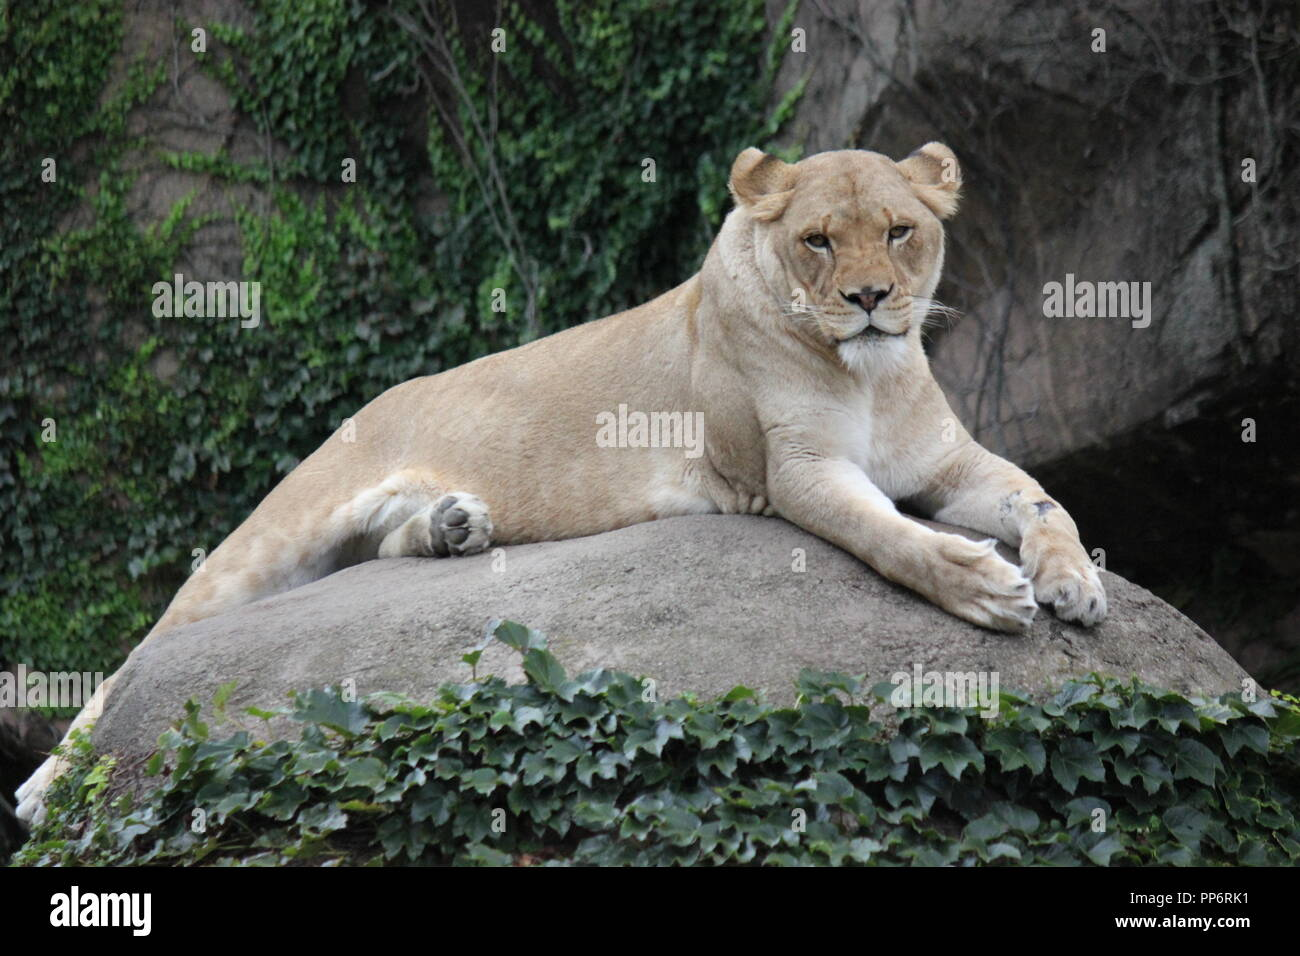 Chicago's Lincoln Park Zoo's lioness, Panthera leo, perched on a huge boulder, posing for photographs. - Stock Image